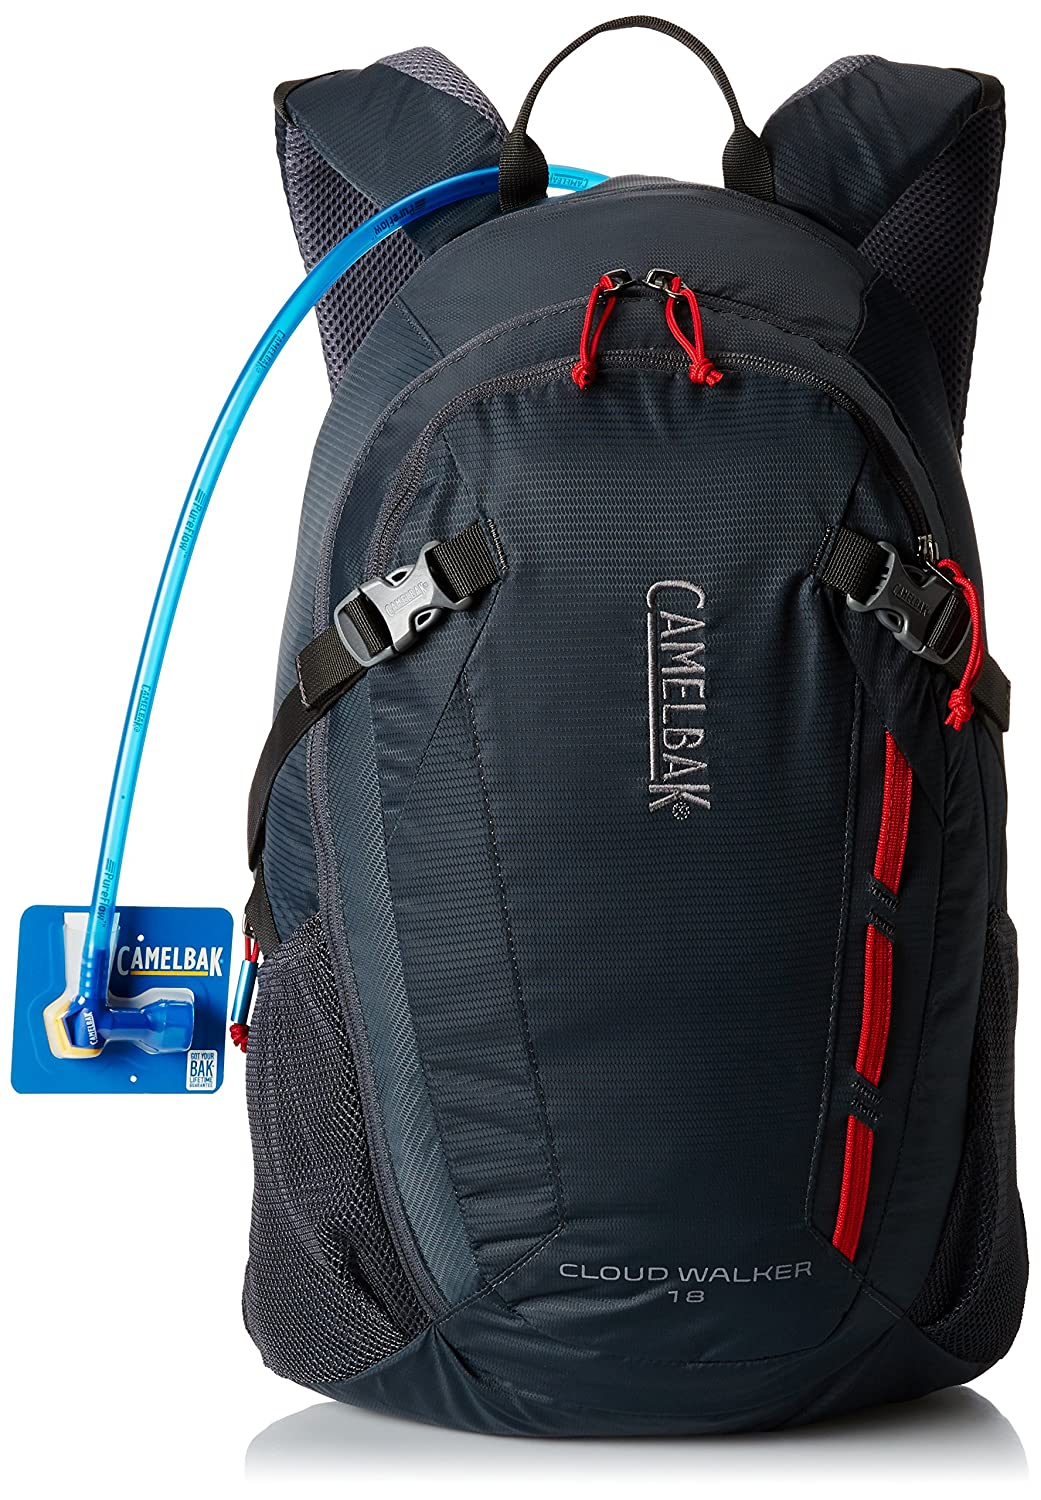 54c050d25 CamelBak 2016 Cloud Walker 18 Hydration Pack